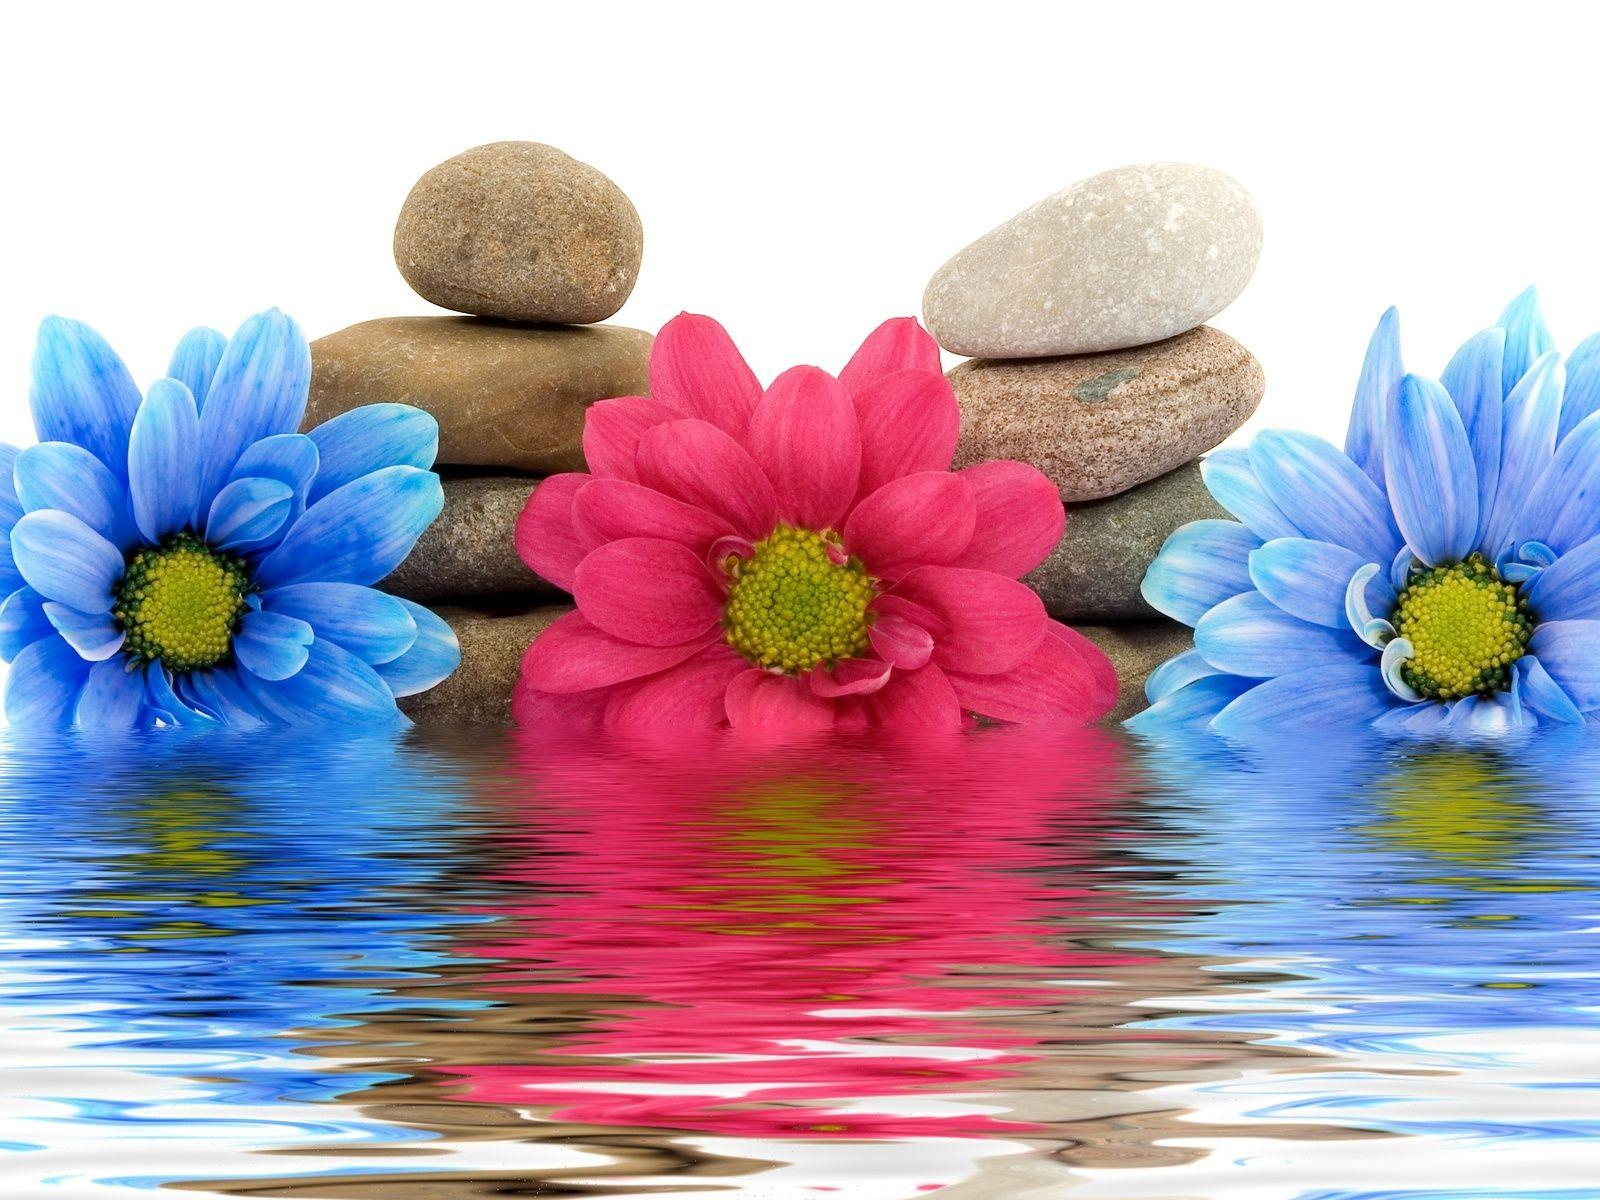 Wallpaper Flowers, Three, Water, Rocks, Reflection HD, Picture, Image